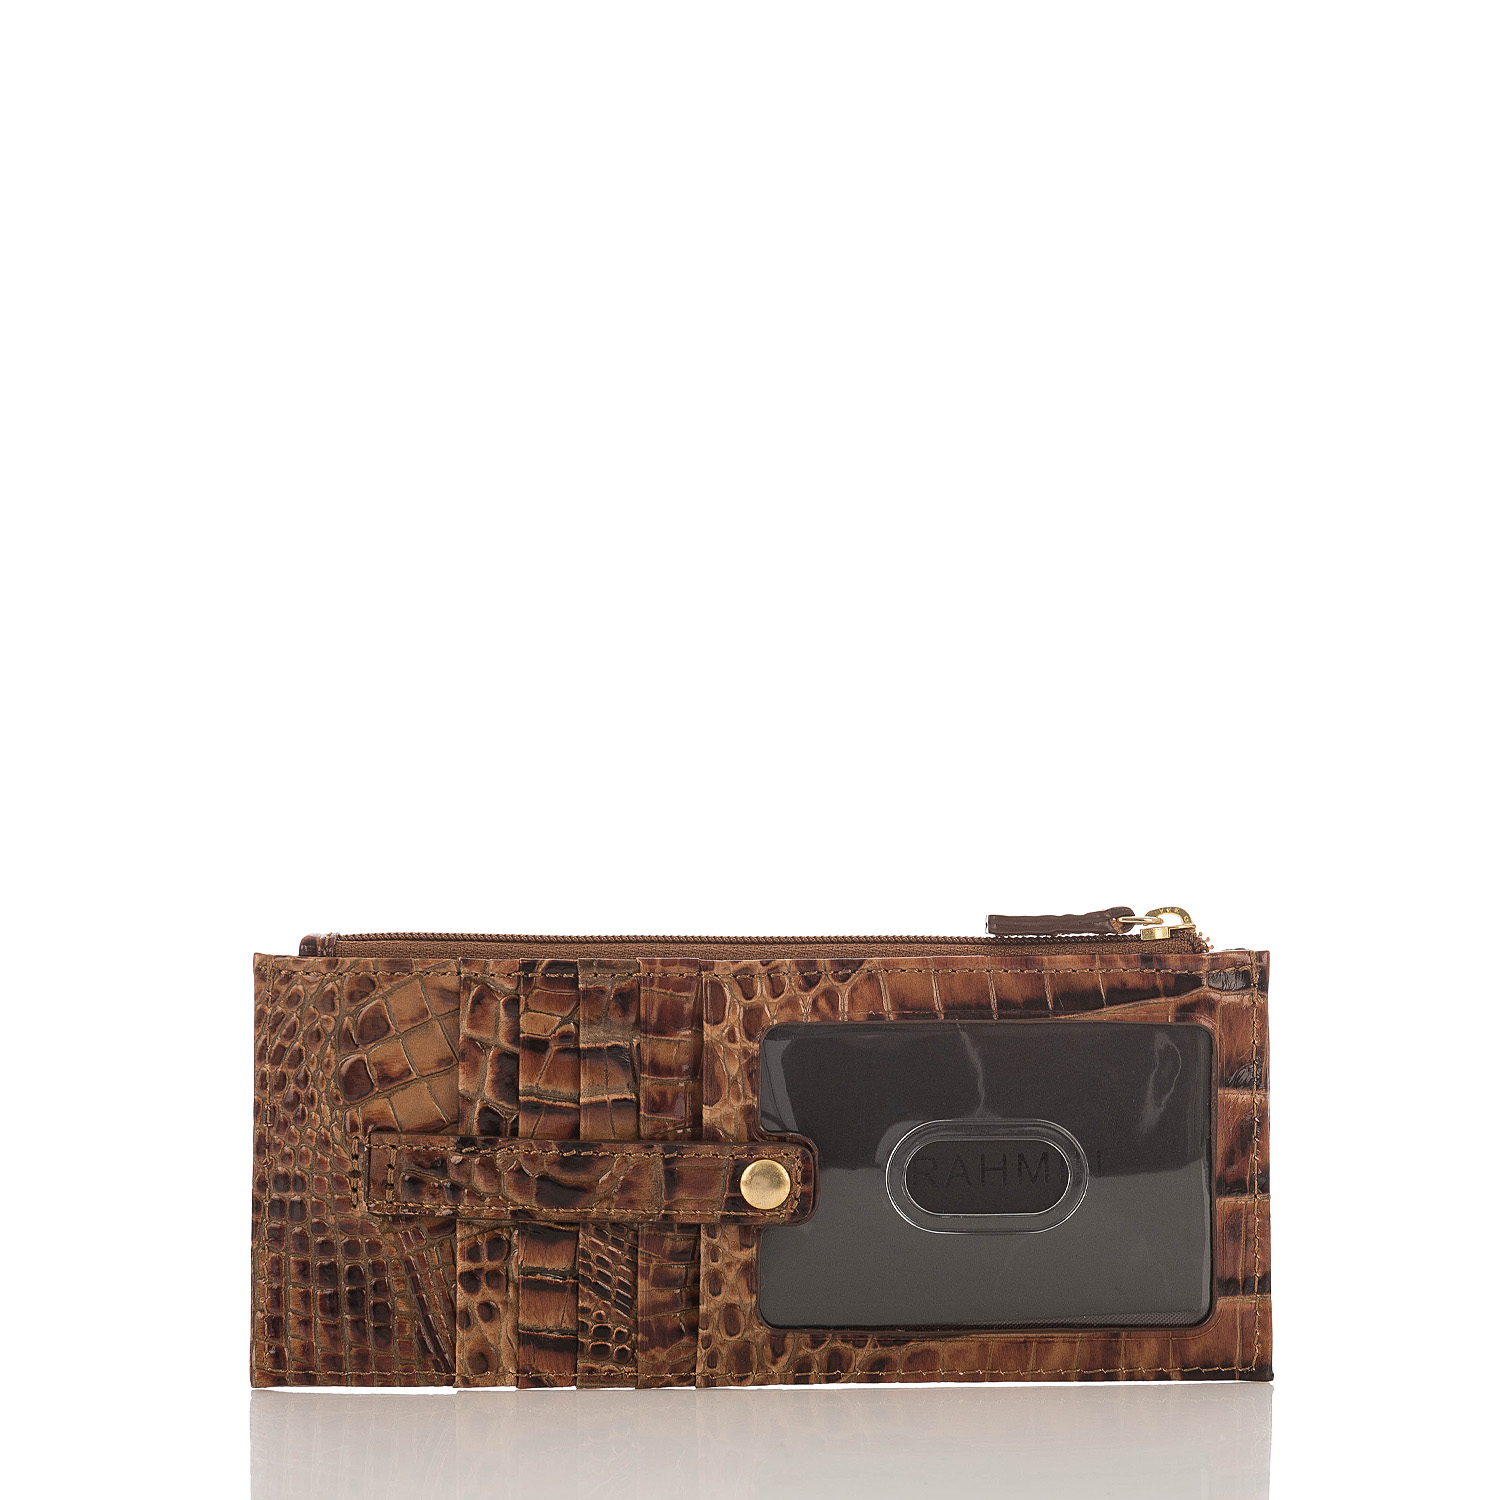 Credit Card Wallet Toasted Almond Melbourne